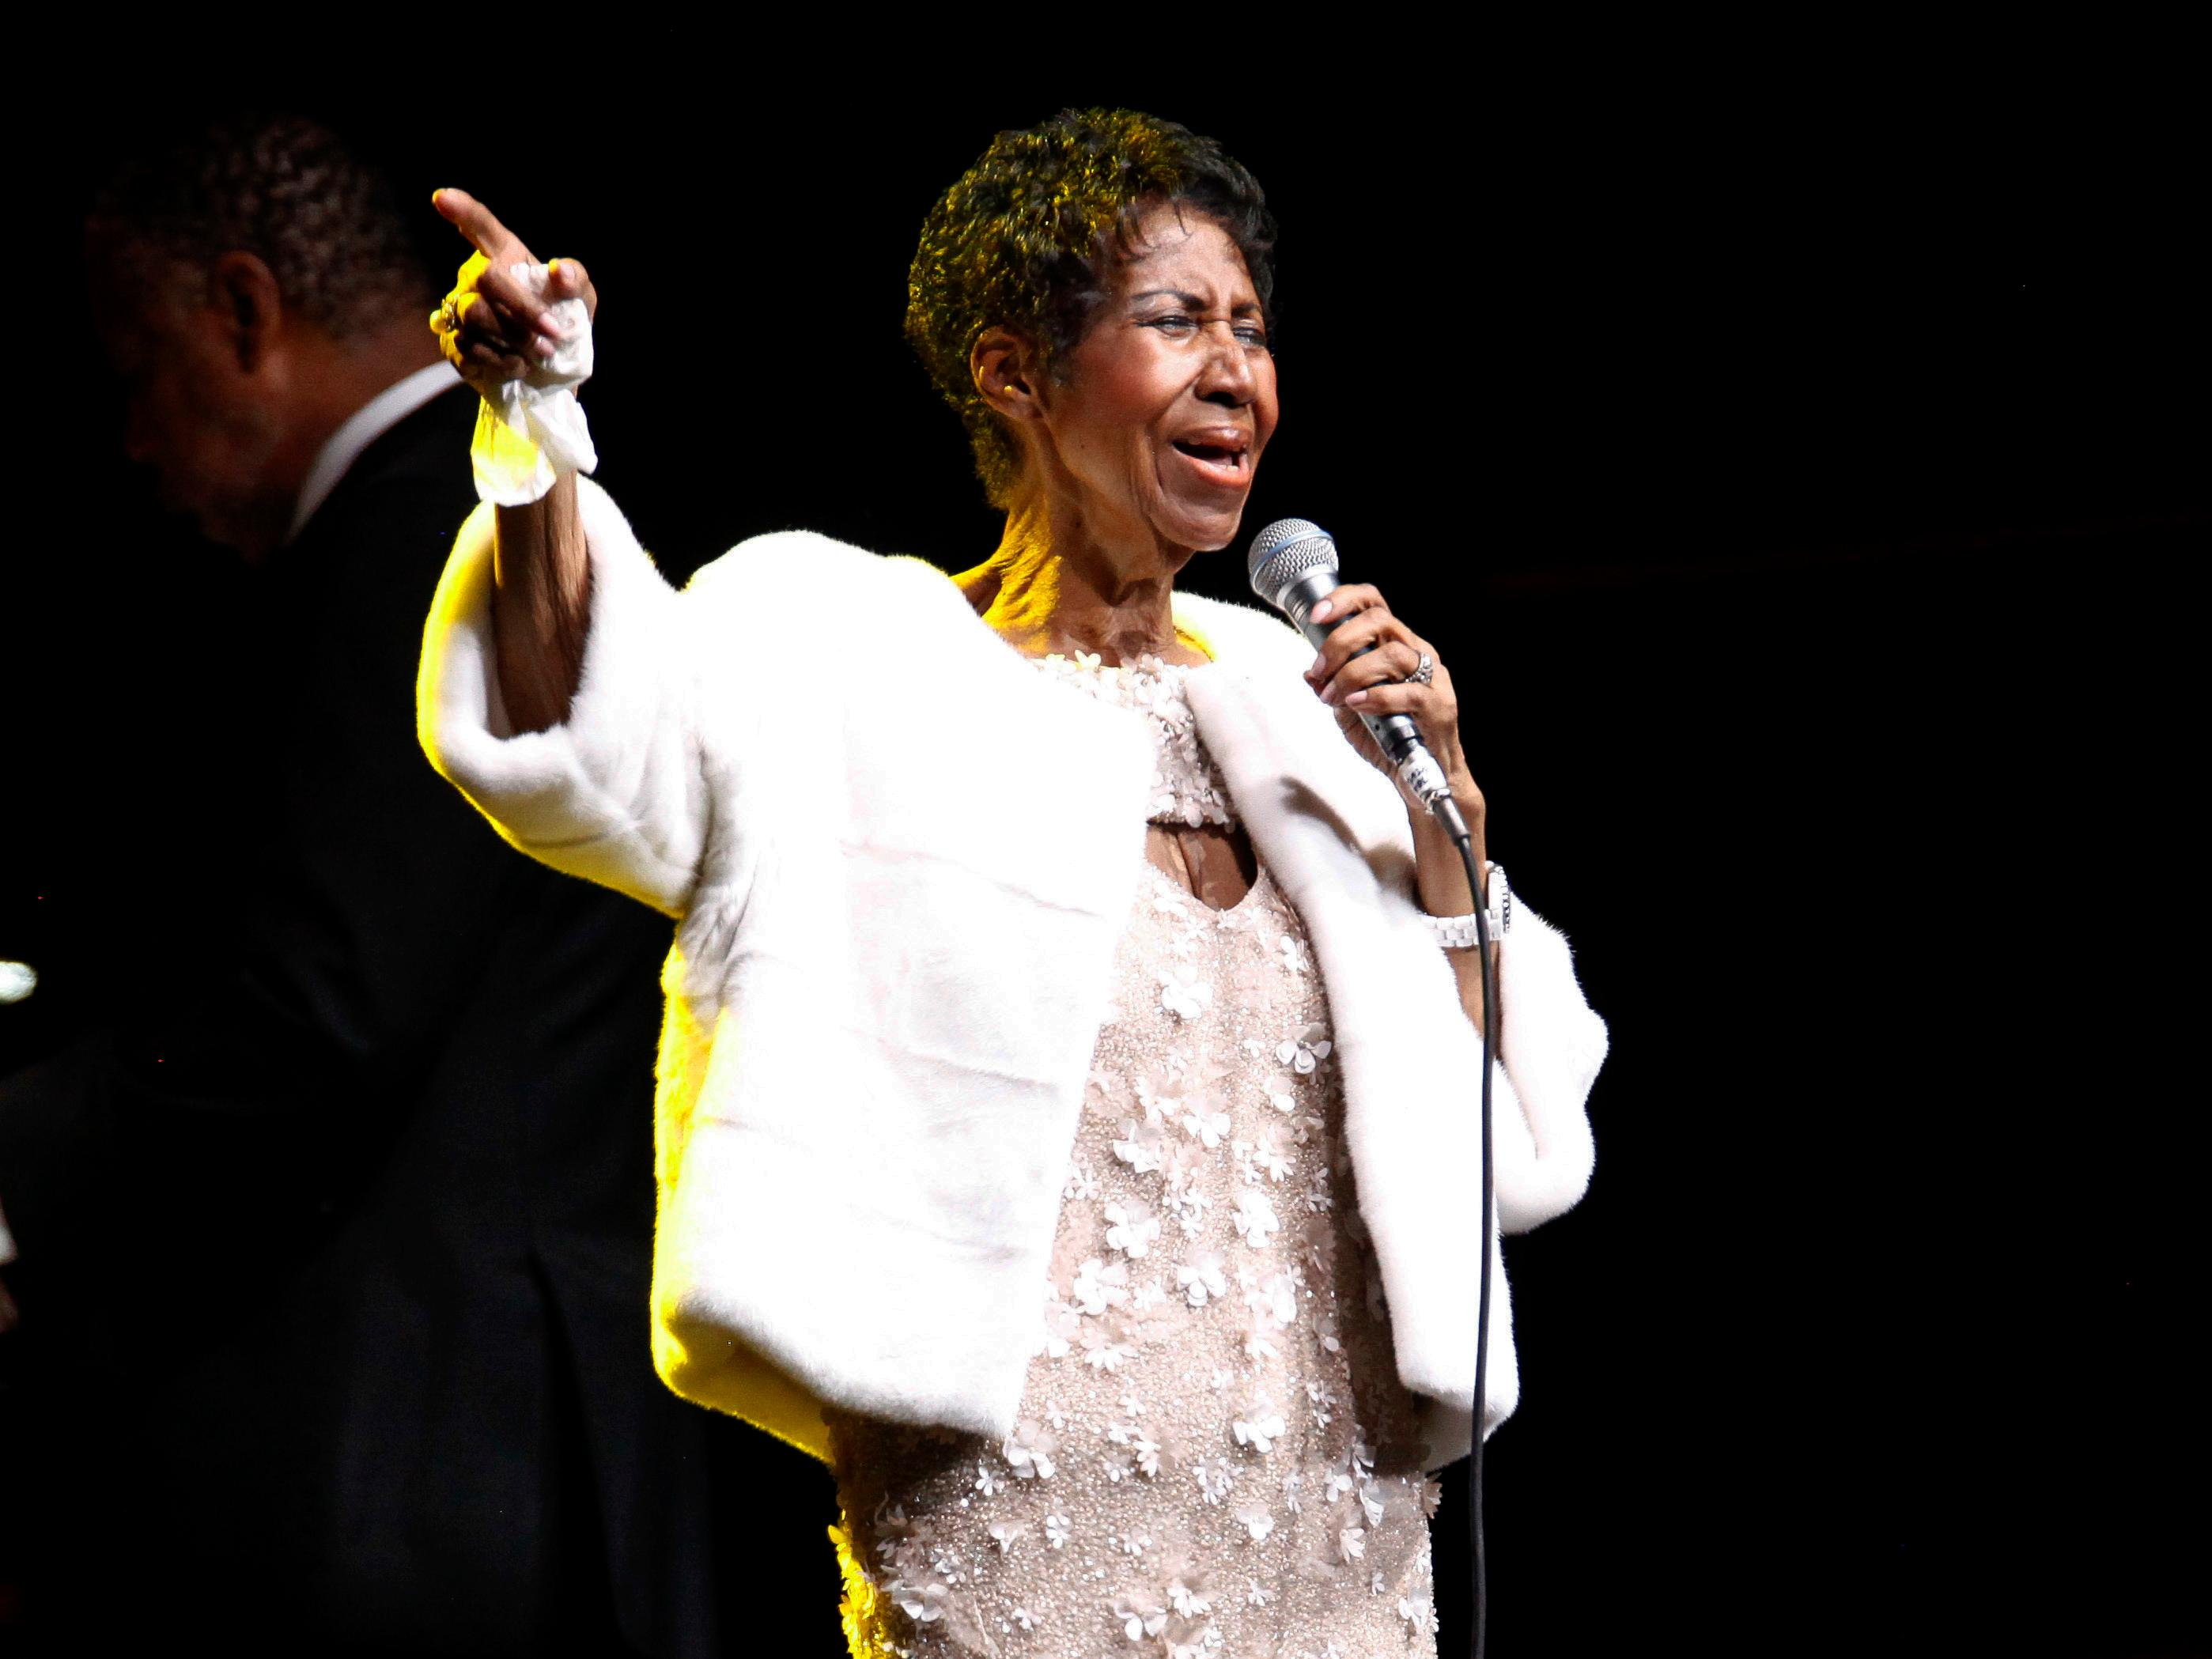 FILE - In this Nov. 7, 2017 file photo, Aretha Franklin attends the Elton John AIDS Foundation's 25th Anniversary Gala in New York.{ } (Photo by Andy Kropa/Invision/AP, File)